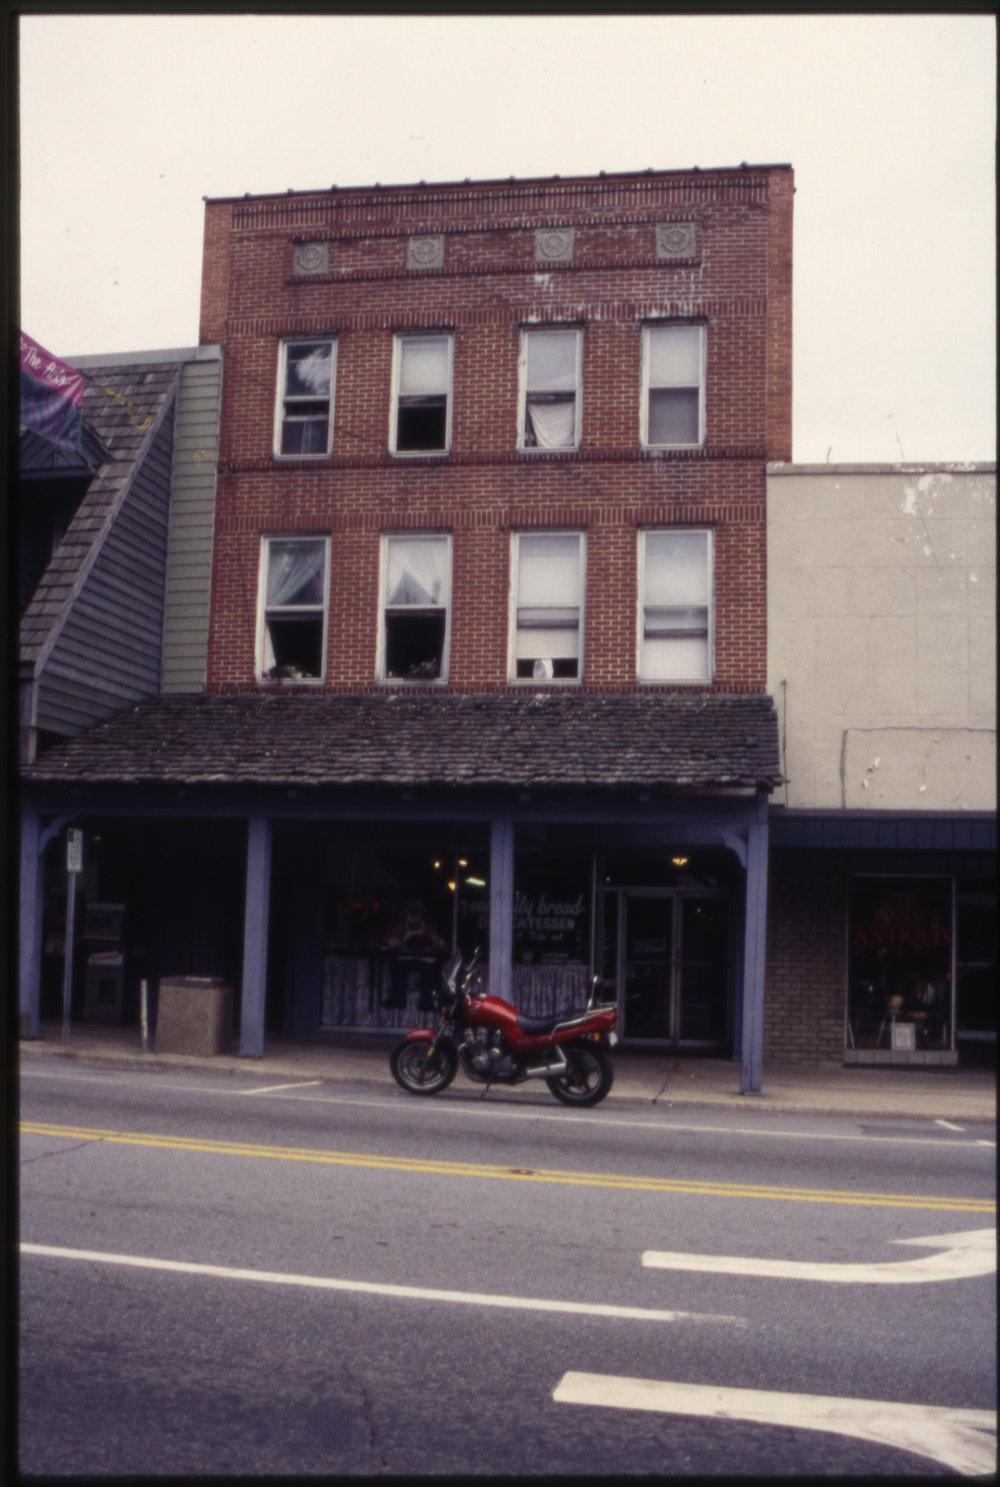 Originally known as the Hamby and Winkler Building (1937), this building on West King Street housed the Our Daily Bread Delicatessen in the 1990s, its present tenant today. Image courtesy of the Downtown Boone Development Association Collection (Dow-Boo-1-010), Digital Watauga Project.